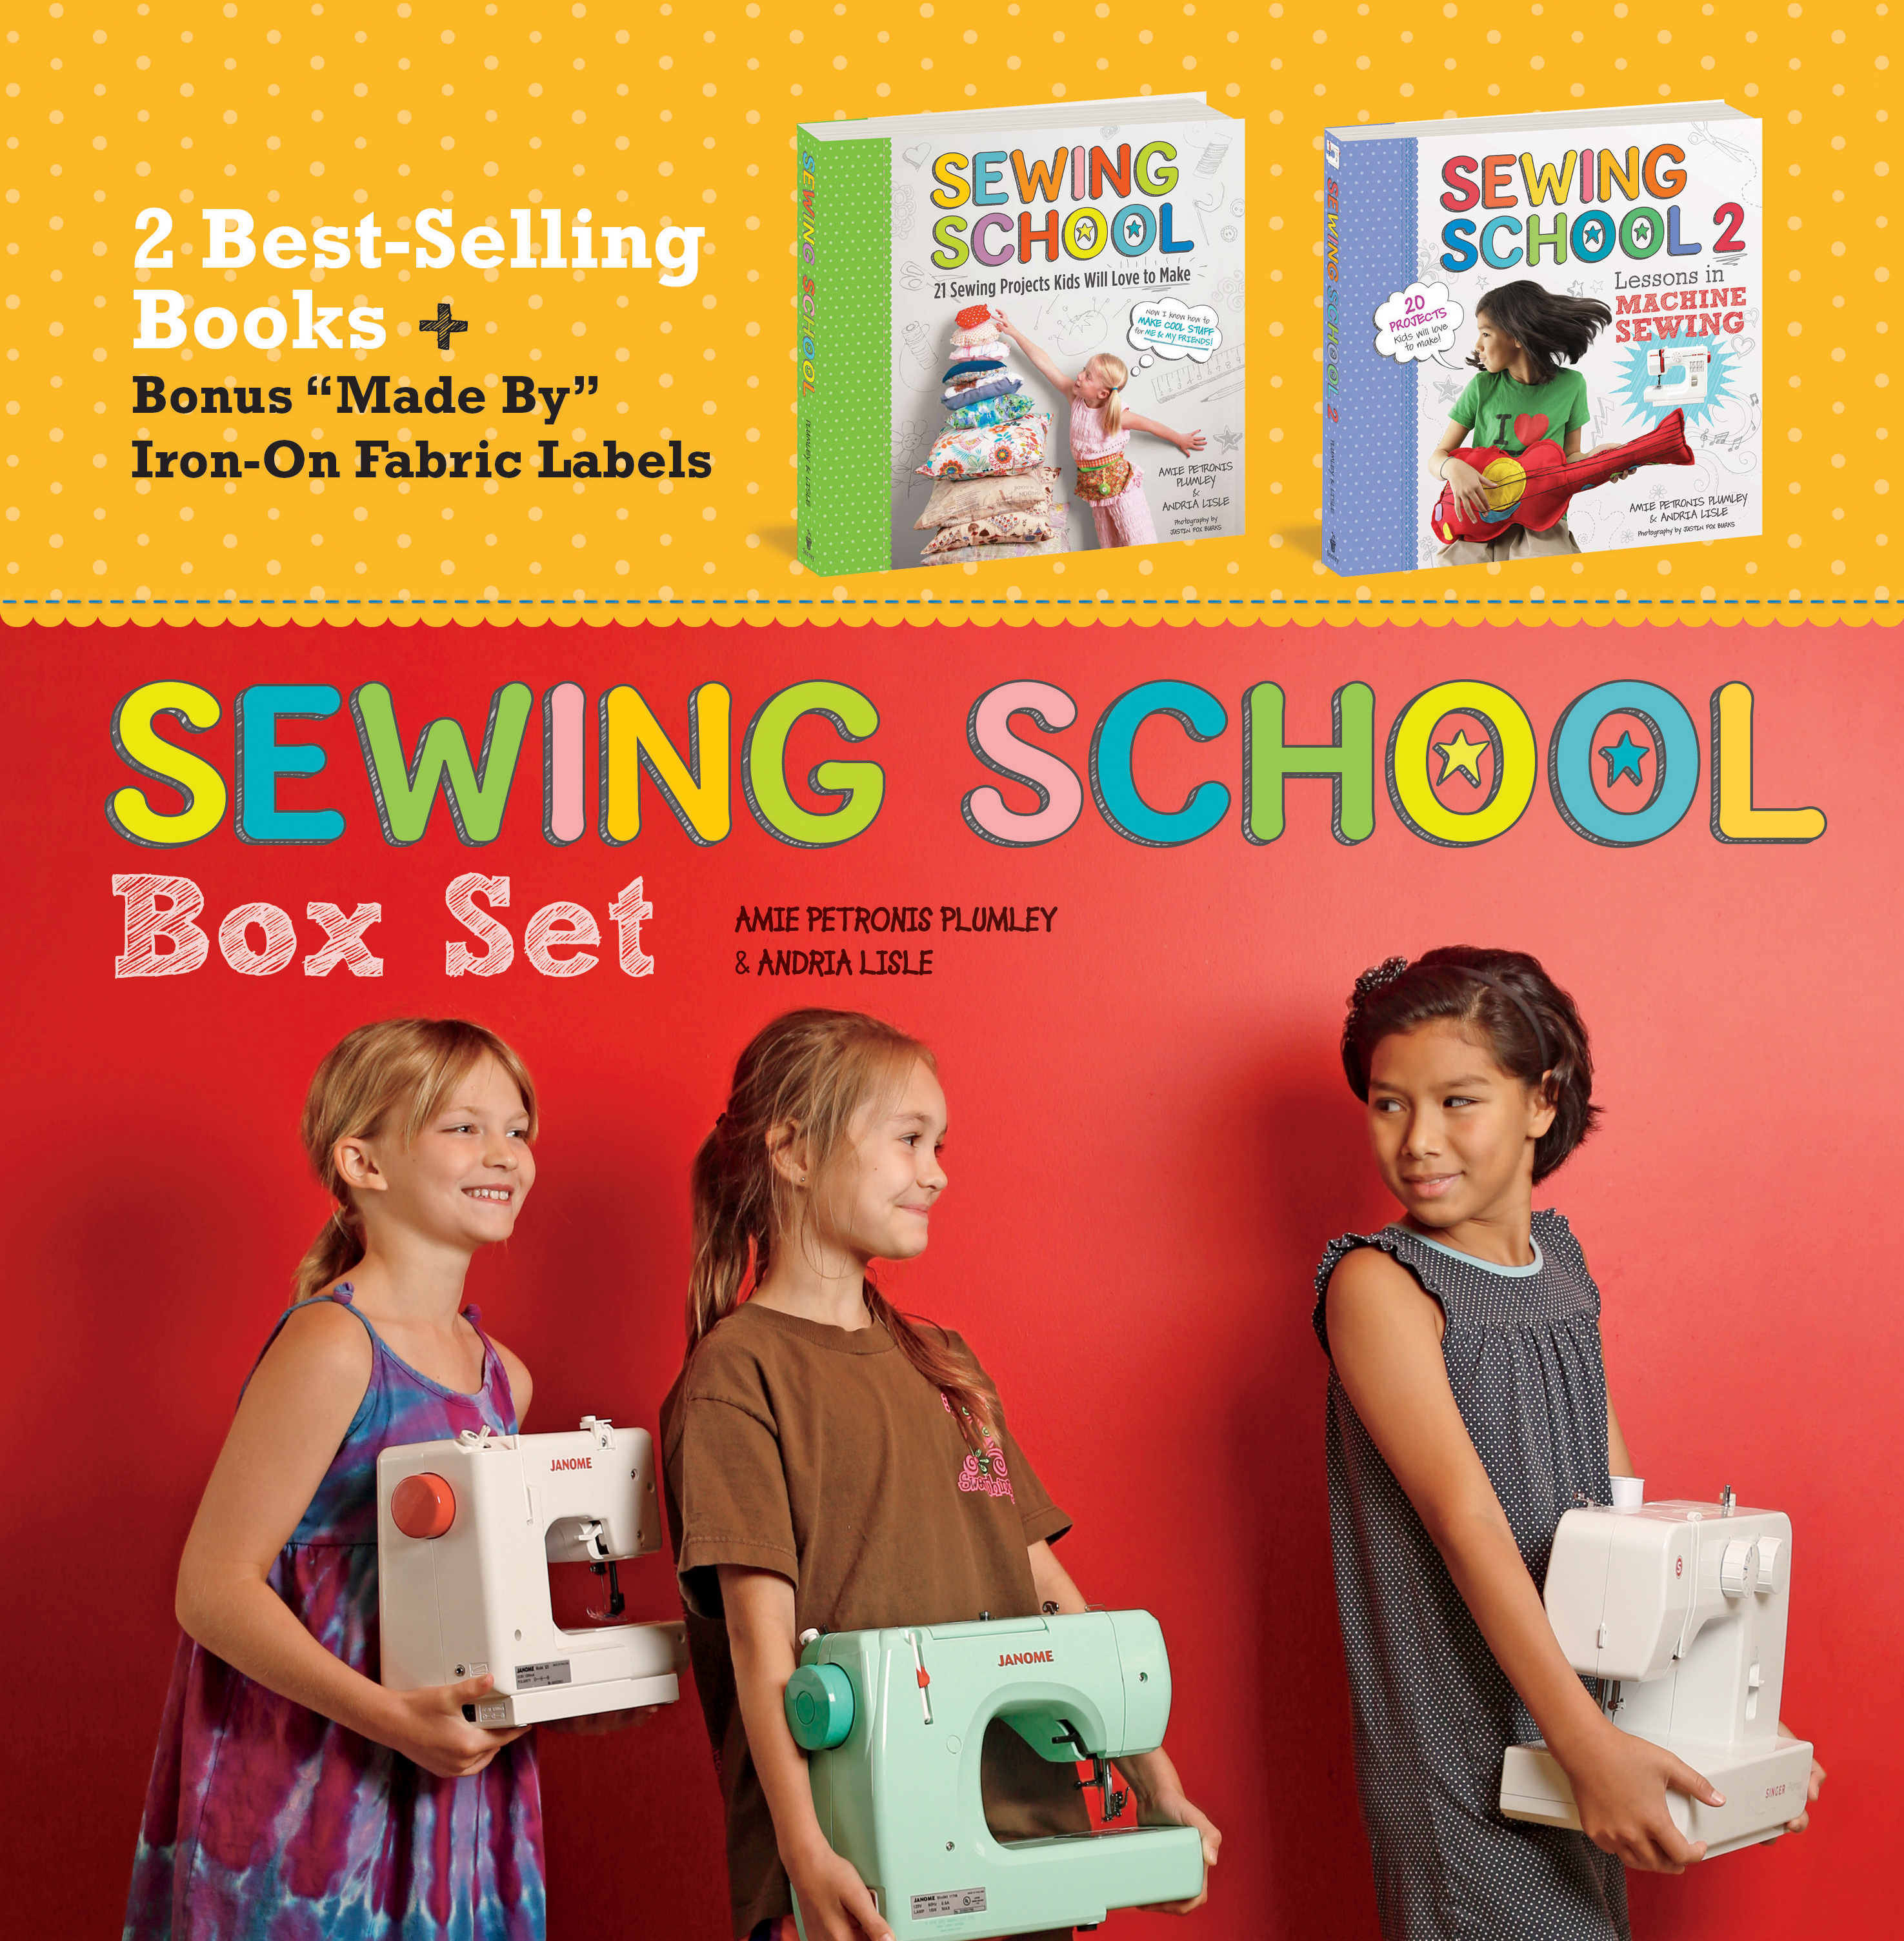 Sewing School <sup>®</sup> Box Set  - Amie Petronis Plumley